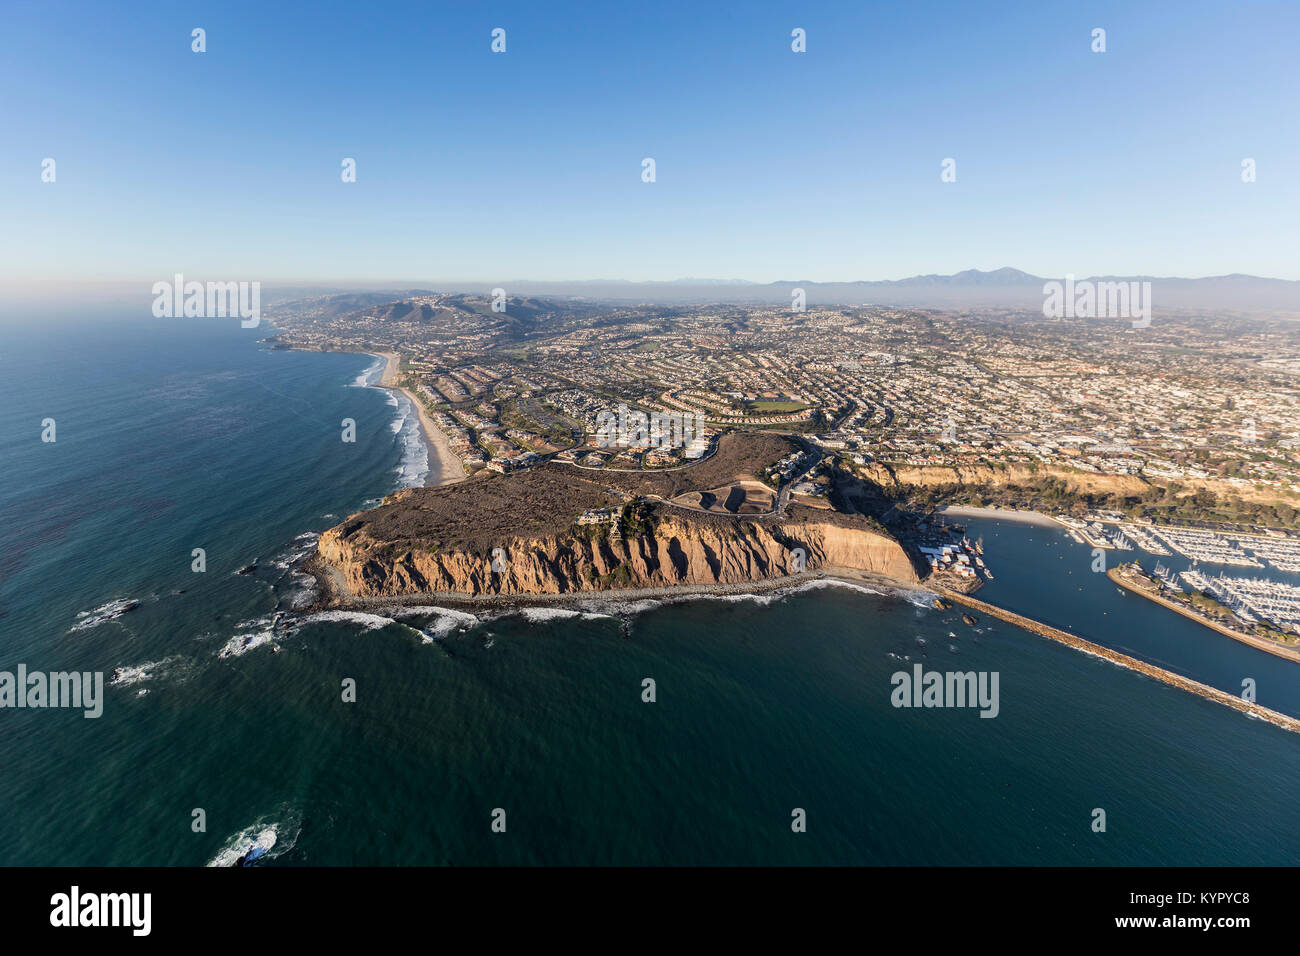 Aerial view of Dana Point on the Southern California pacific coast. - Stock Image